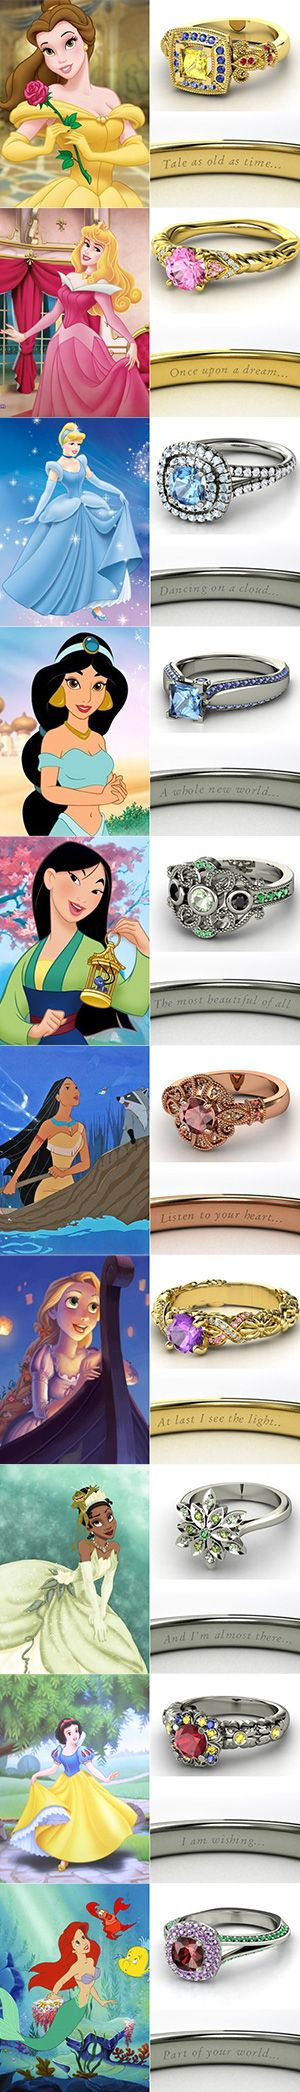 So the criticizing part of me wanted to say how dumb Disney Engagement rings were, but then I had a thought, these are the infamous love stories of our time... just like Romeo & Juliette or Mider & Etain, so this is actually very romantic and deep to get a ring based off your favorite love story.